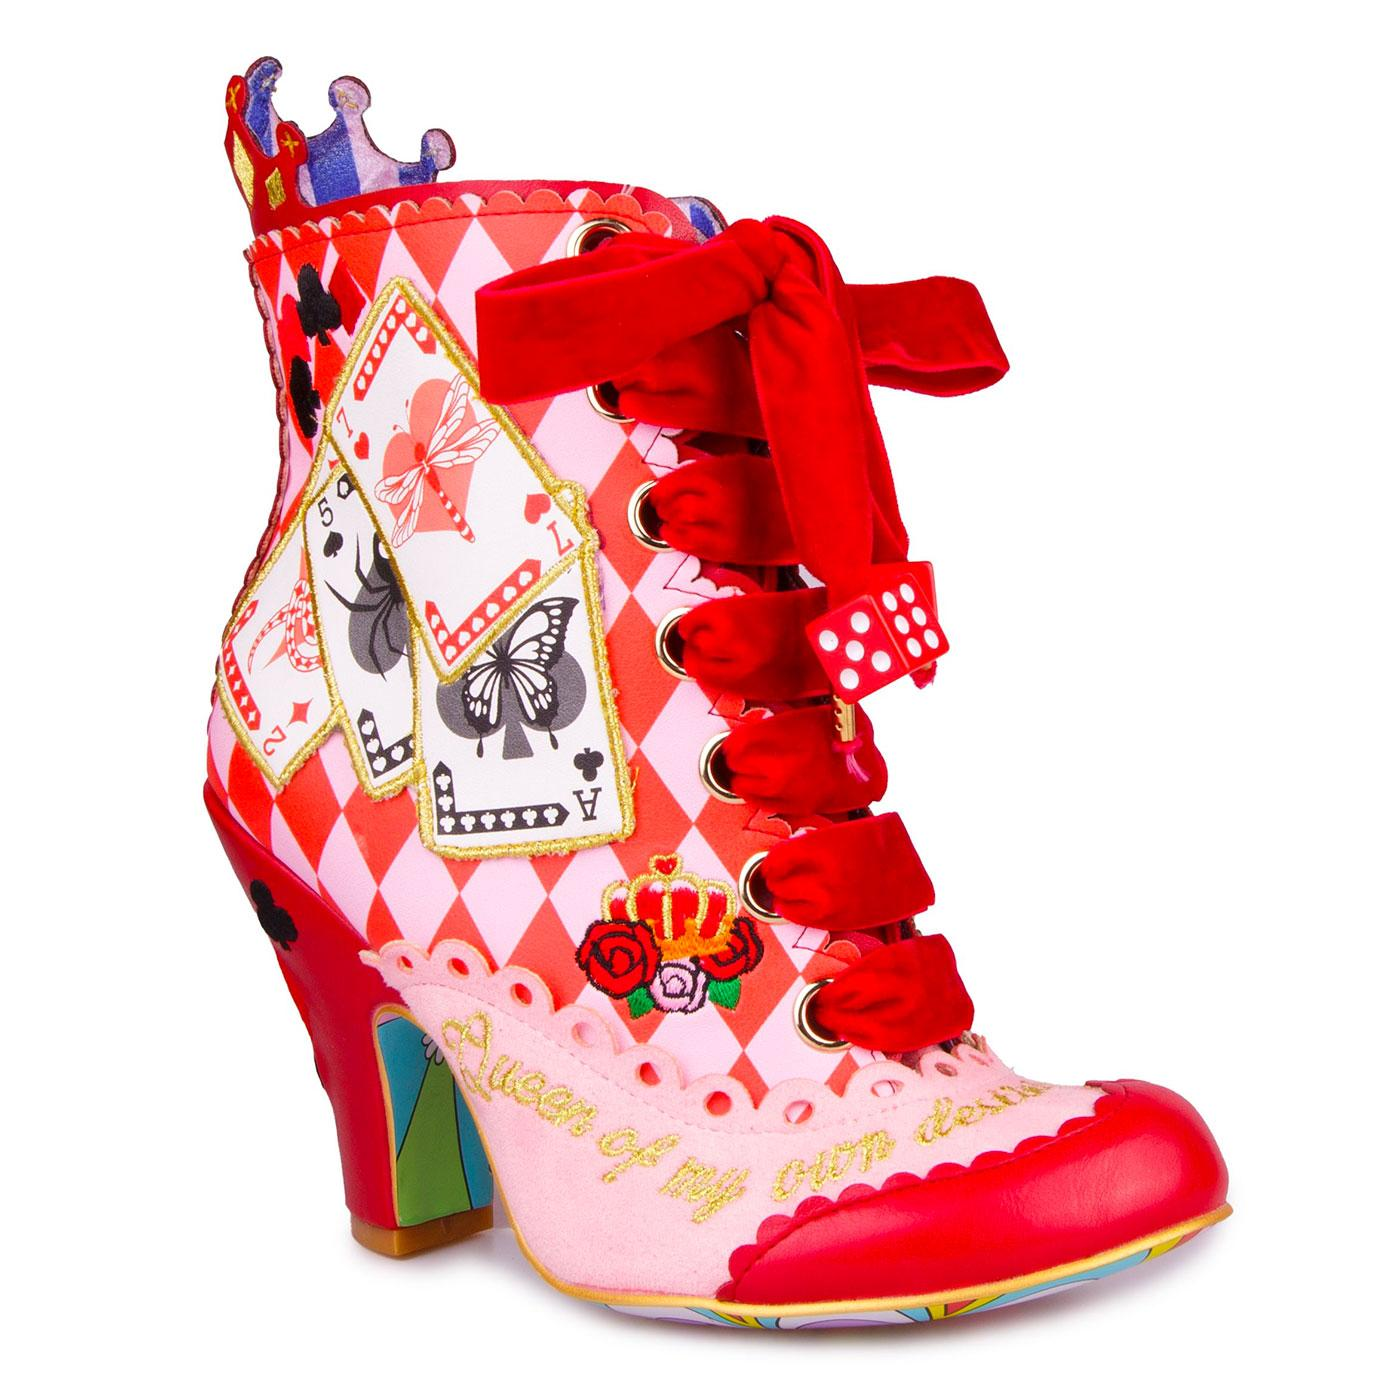 Full House IRREGULAR CHOICE Retro Boots in Red